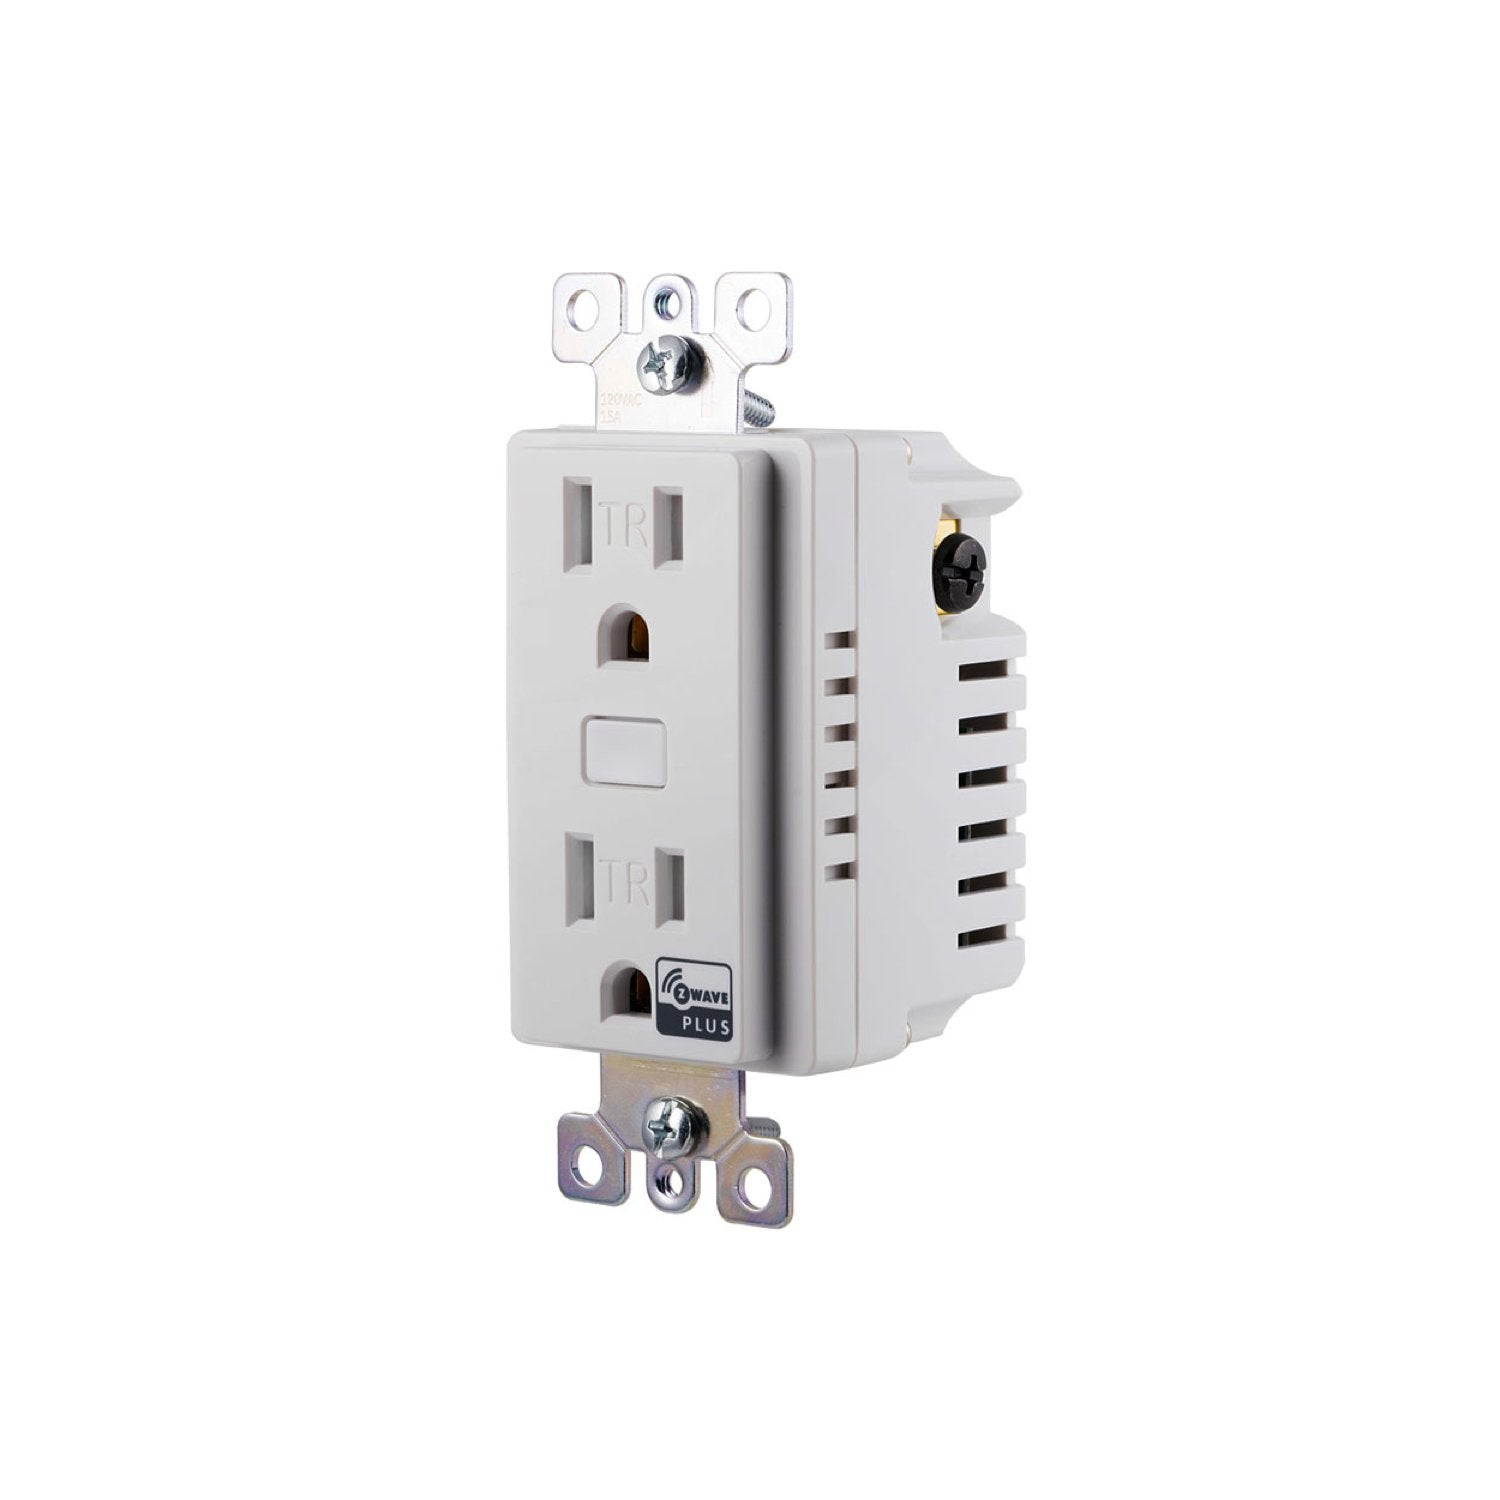 GE In-Wall Smart Outlet (for Works with Ring Alarm Security System) - White